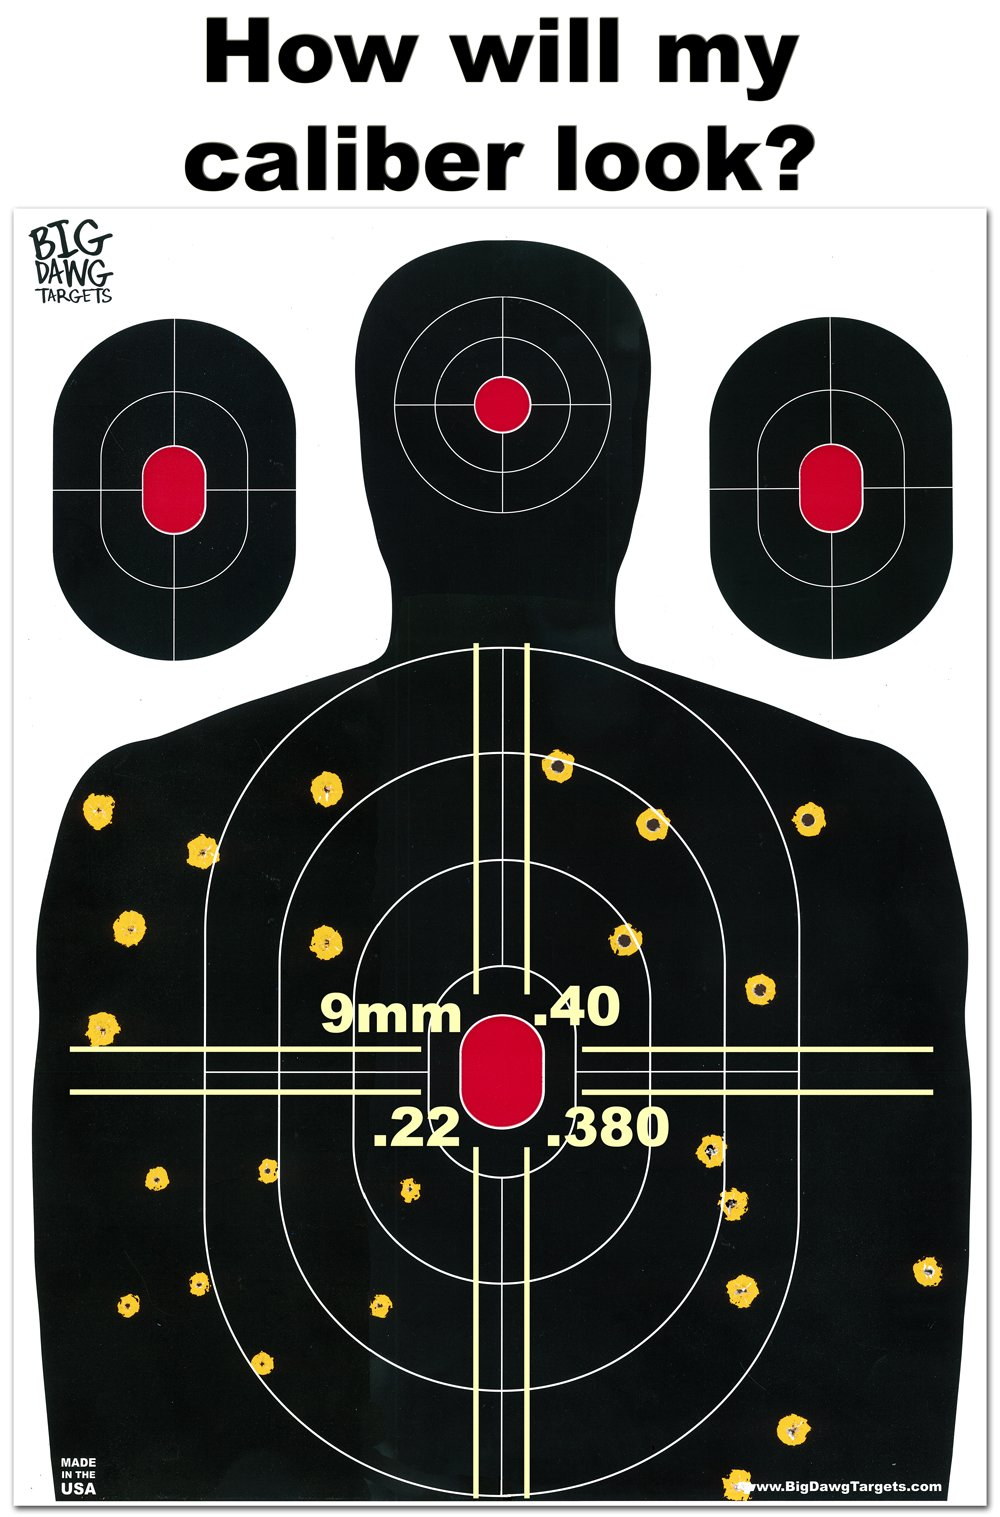 Big Dawg Targets - 18 X 24 Inch Silhouette Reactive Splatter Shooting Target - 25 Pack by Big Dawg Targets (Image #3)